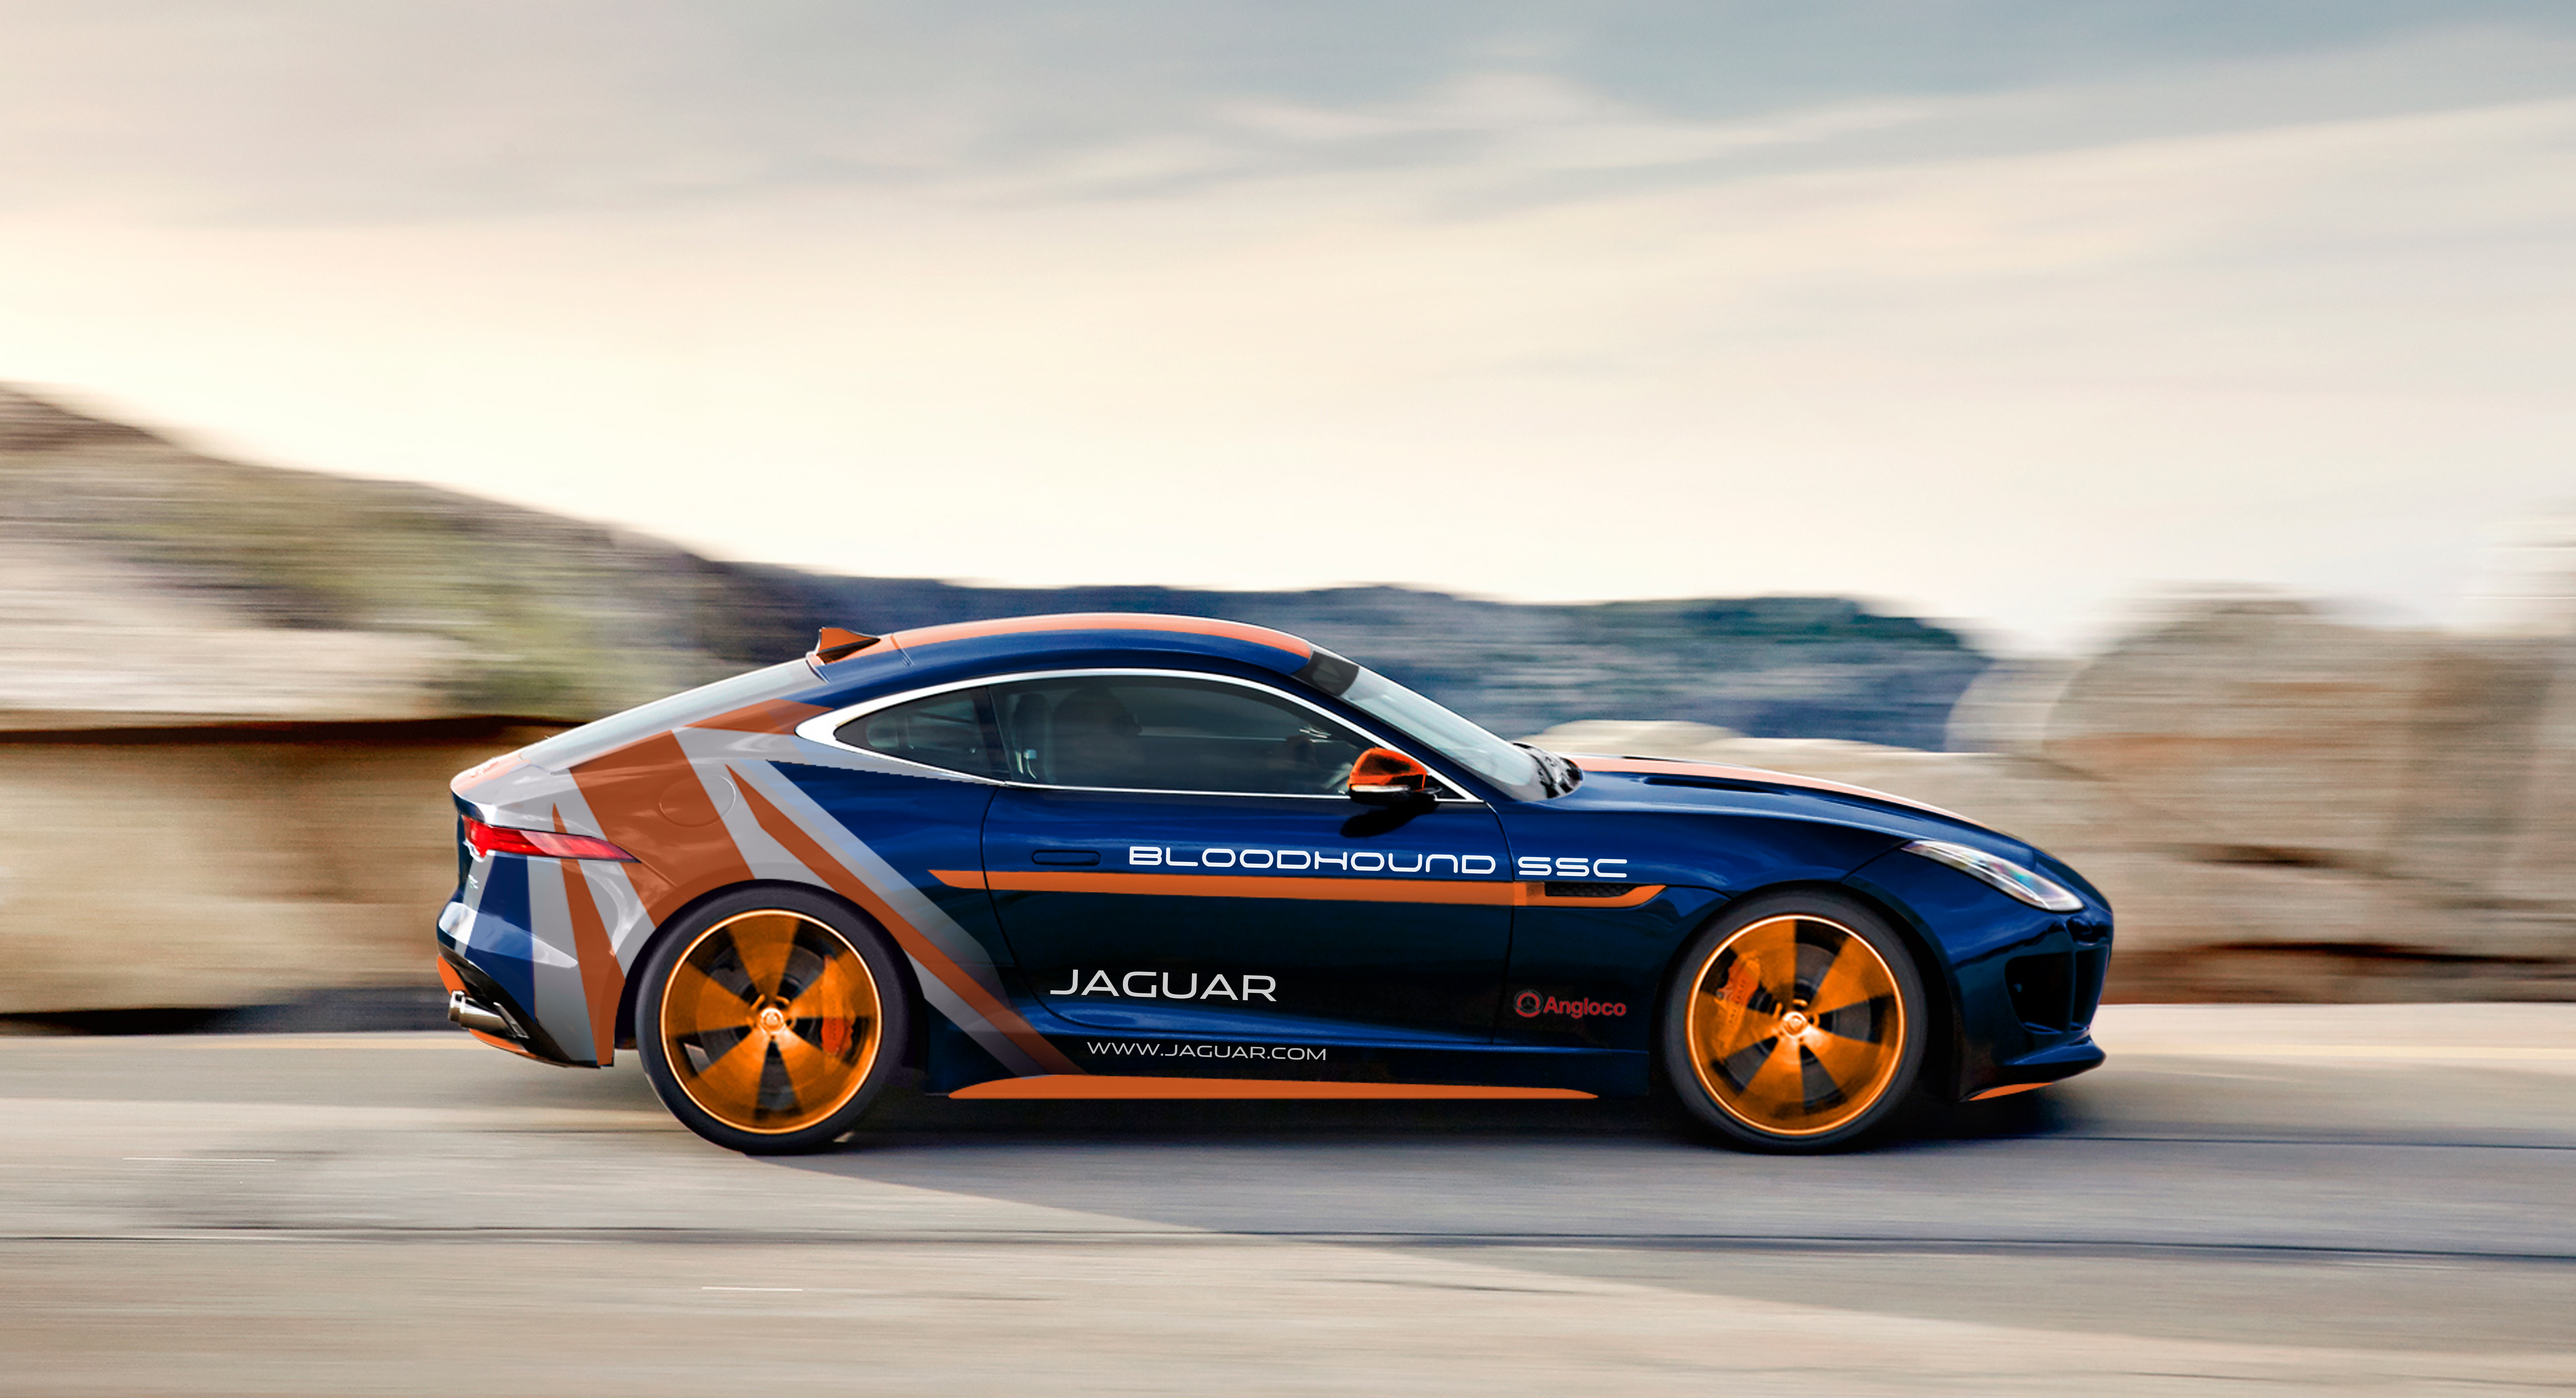 jaguar awd response vehicle f support rapid bloodhound ssc type r